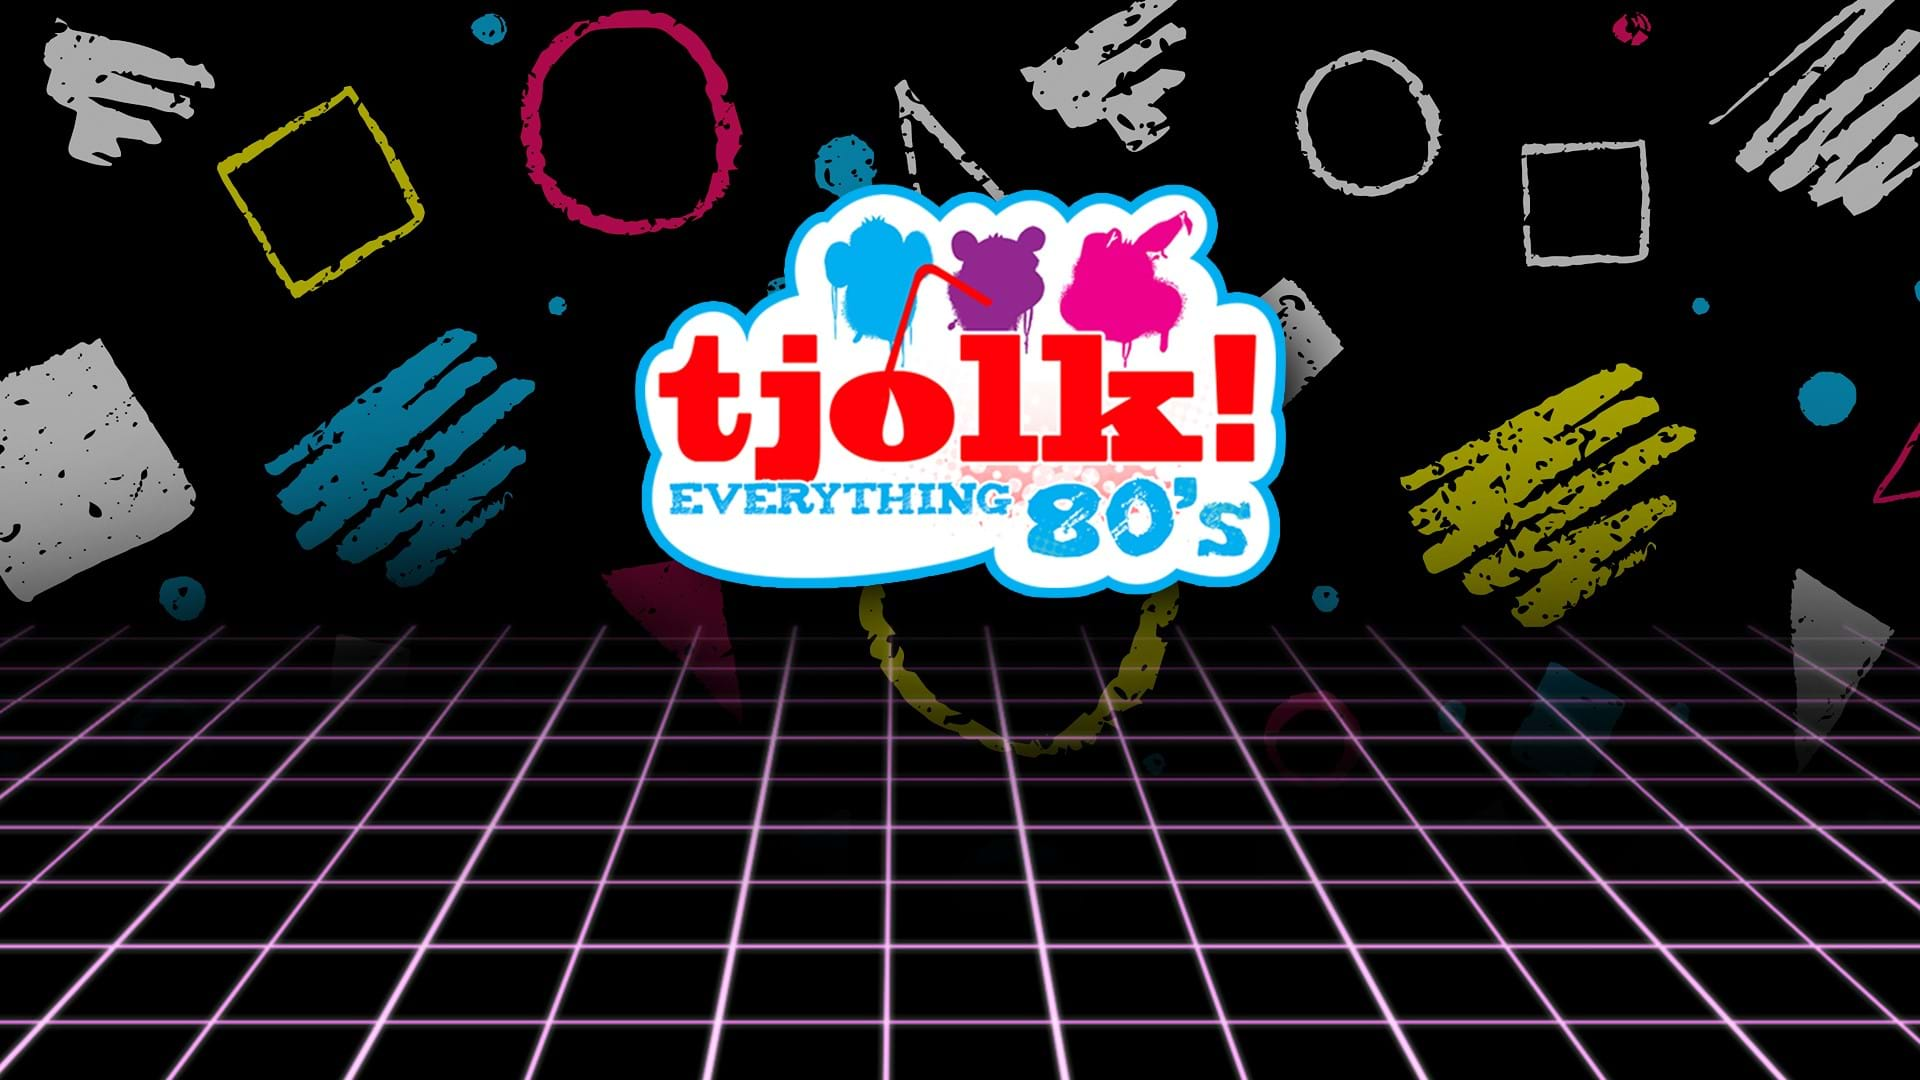 Tjolk! Everything 80's